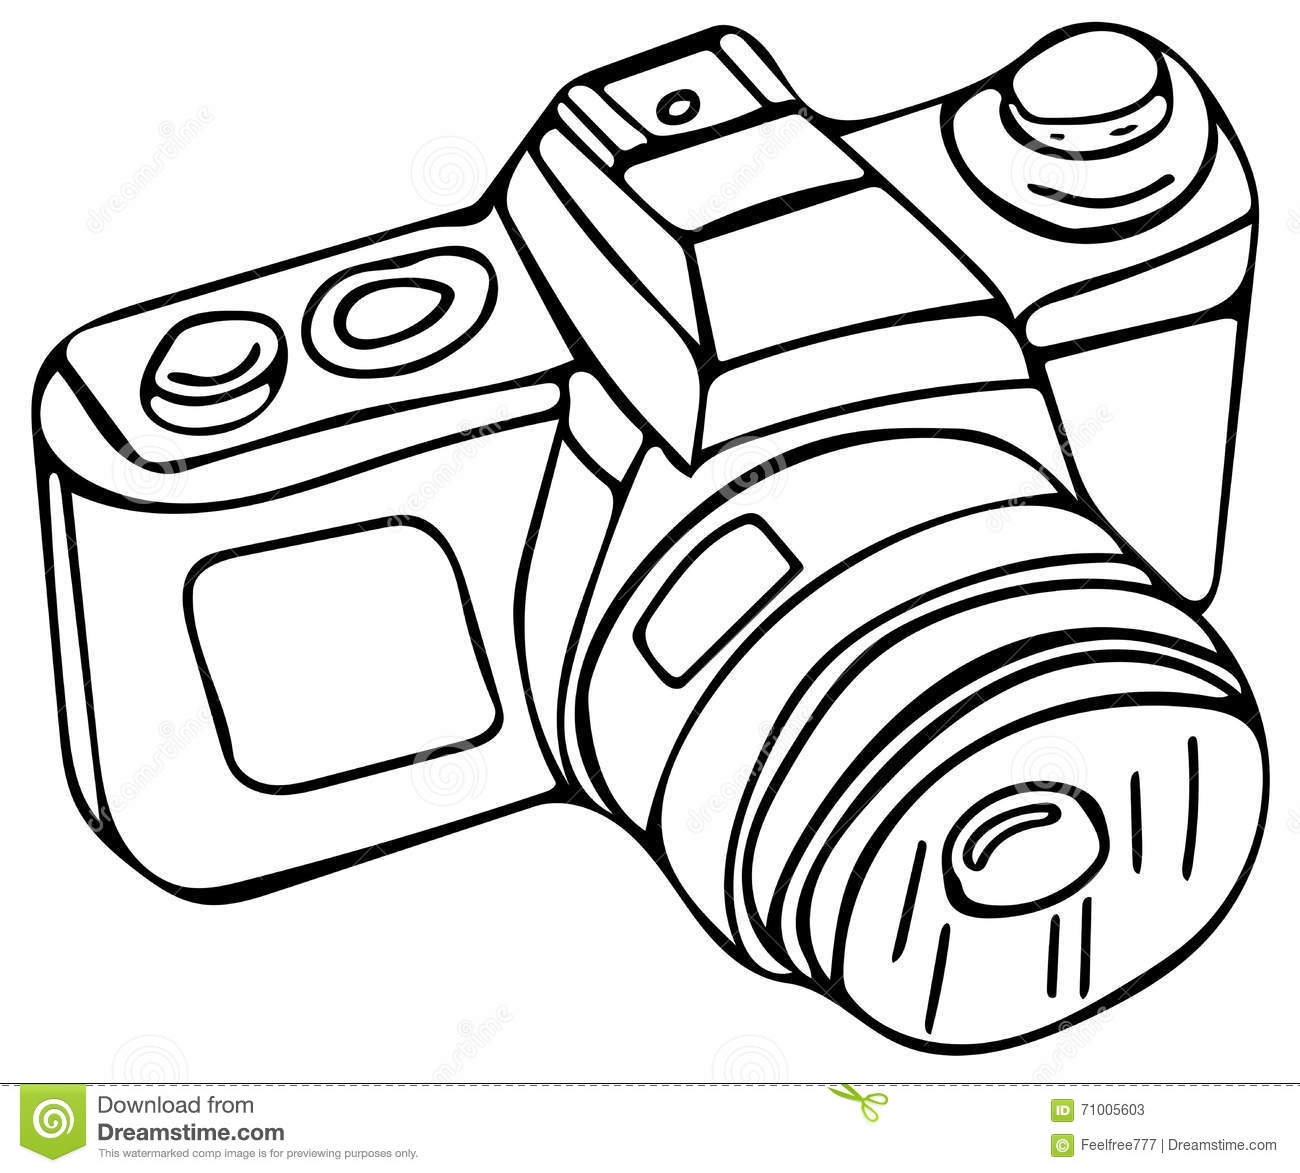 stock photos  photo camera coloring pages  image  71005603